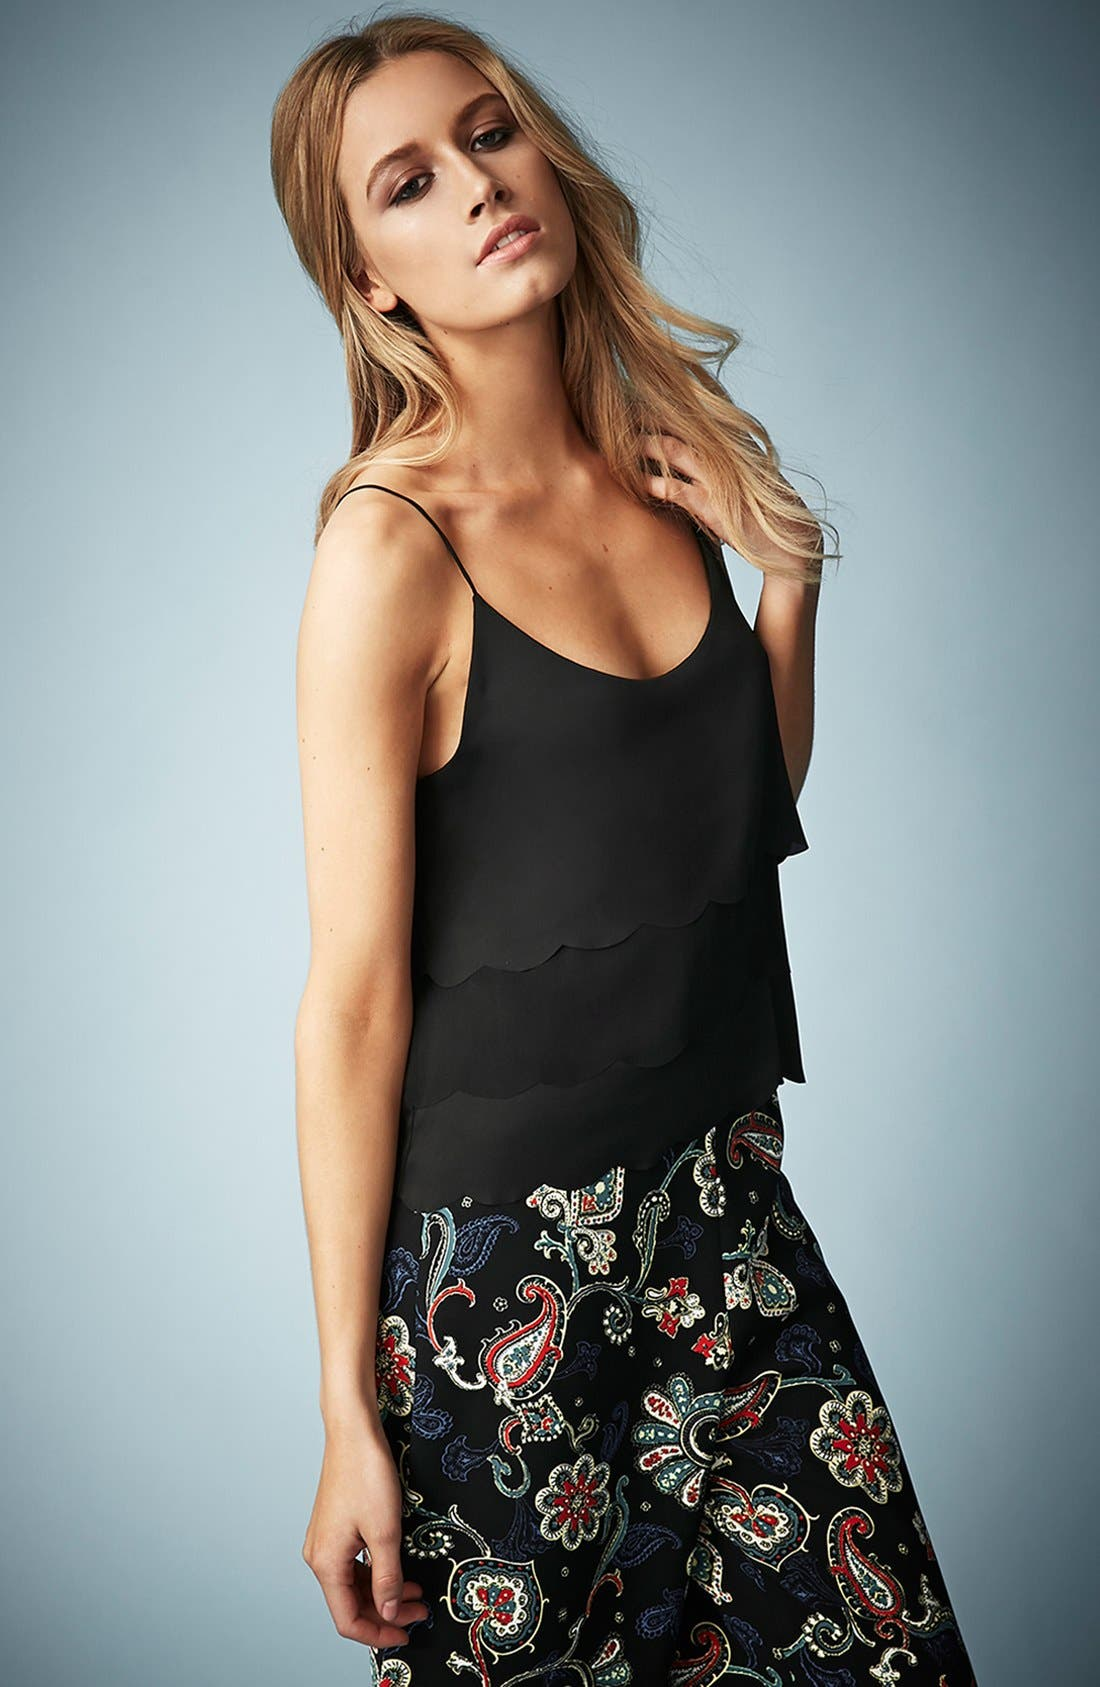 Main Image - Kate Moss for Topshop Scalloped Camisole (Online Only)